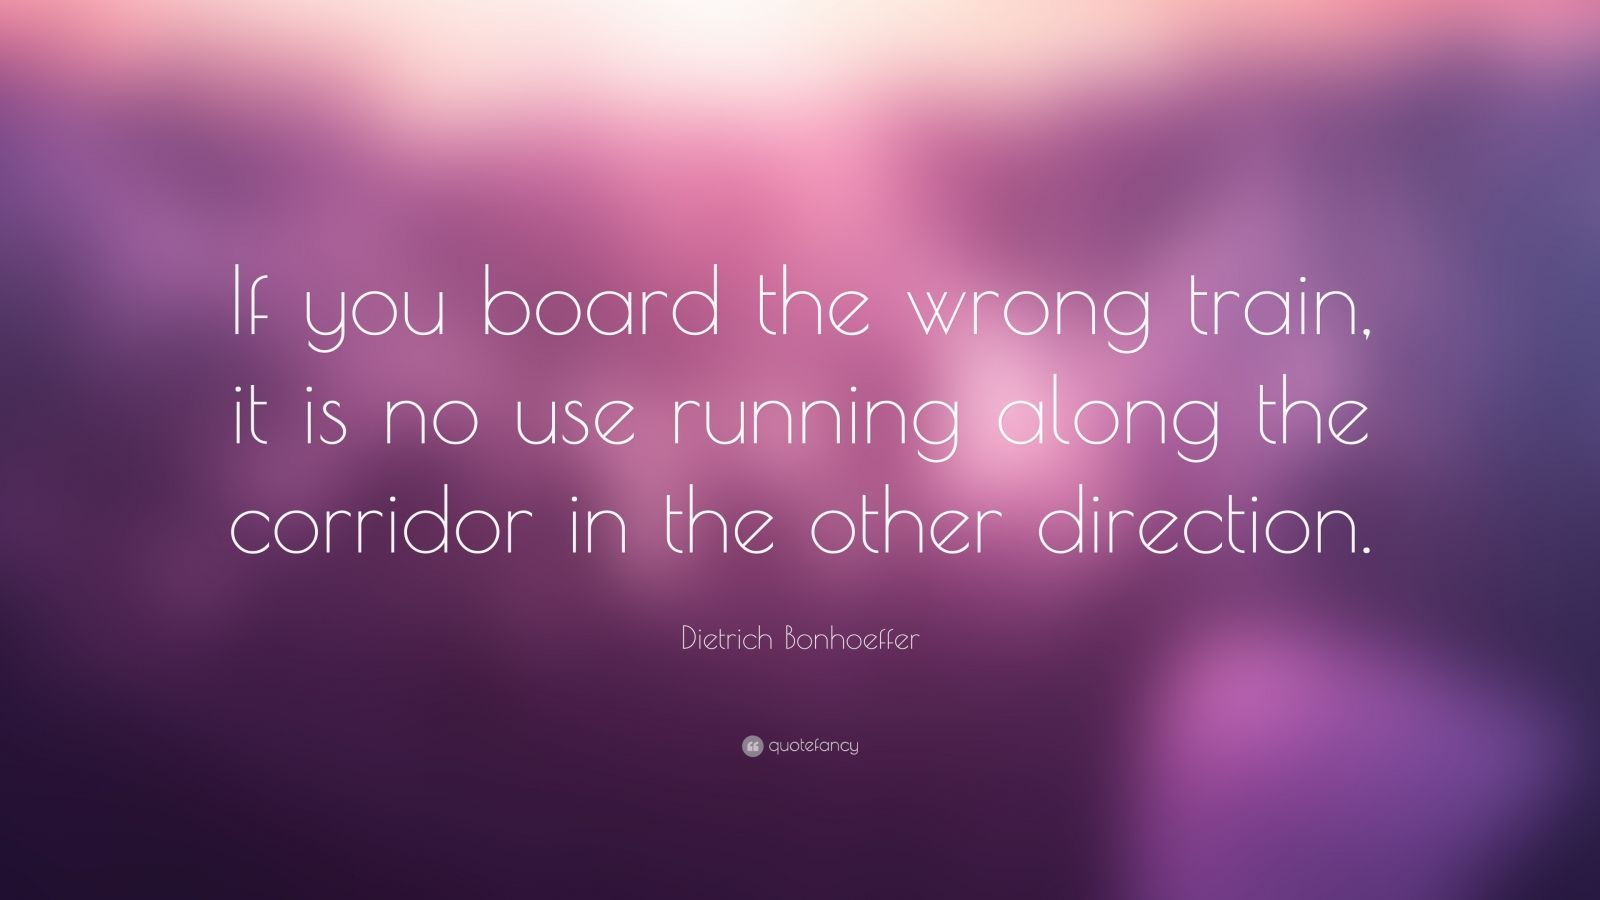 """Dietrich Bonhoeffer Quote: """"If you board the wrong train, it is no use running along the corridor in the other direction."""""""